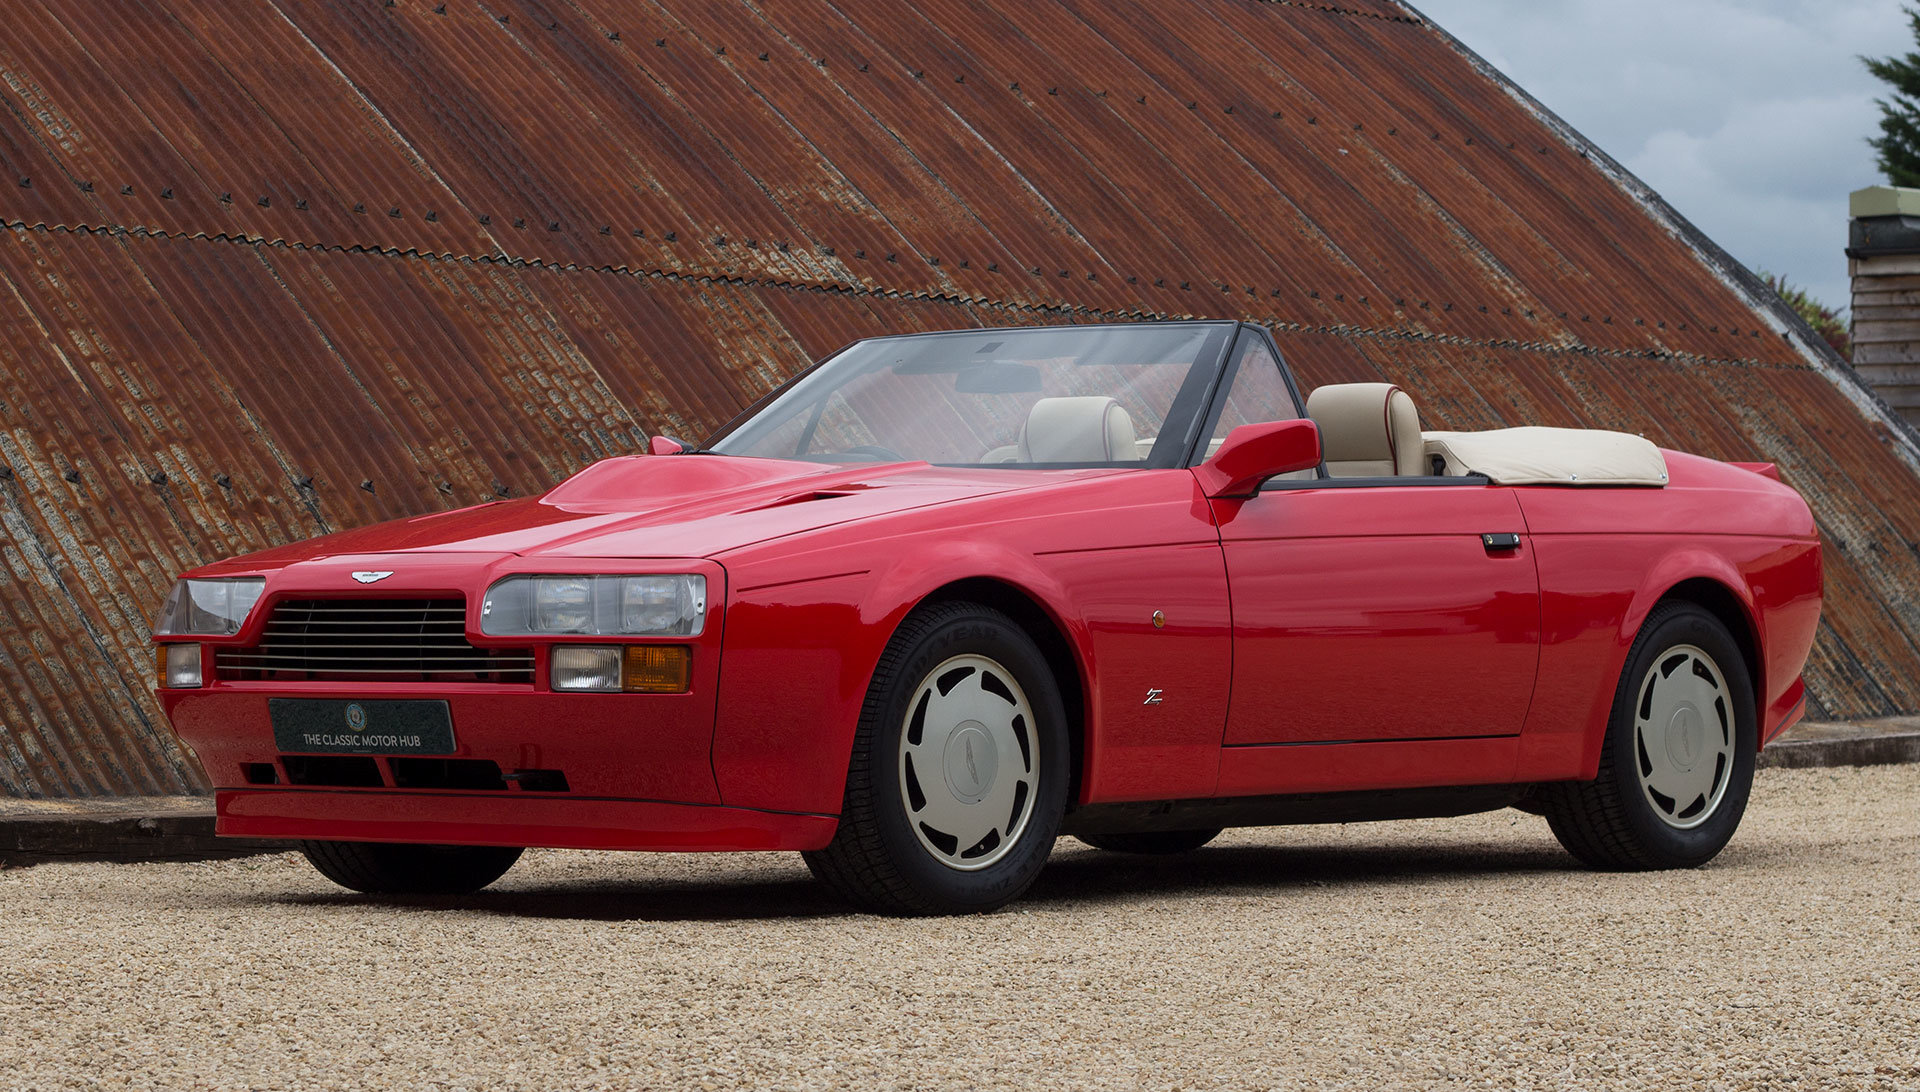 1989 Aston Martin V8 Vantage Volante Zagato 6.3 Litre For Sale (picture 1 of 24)